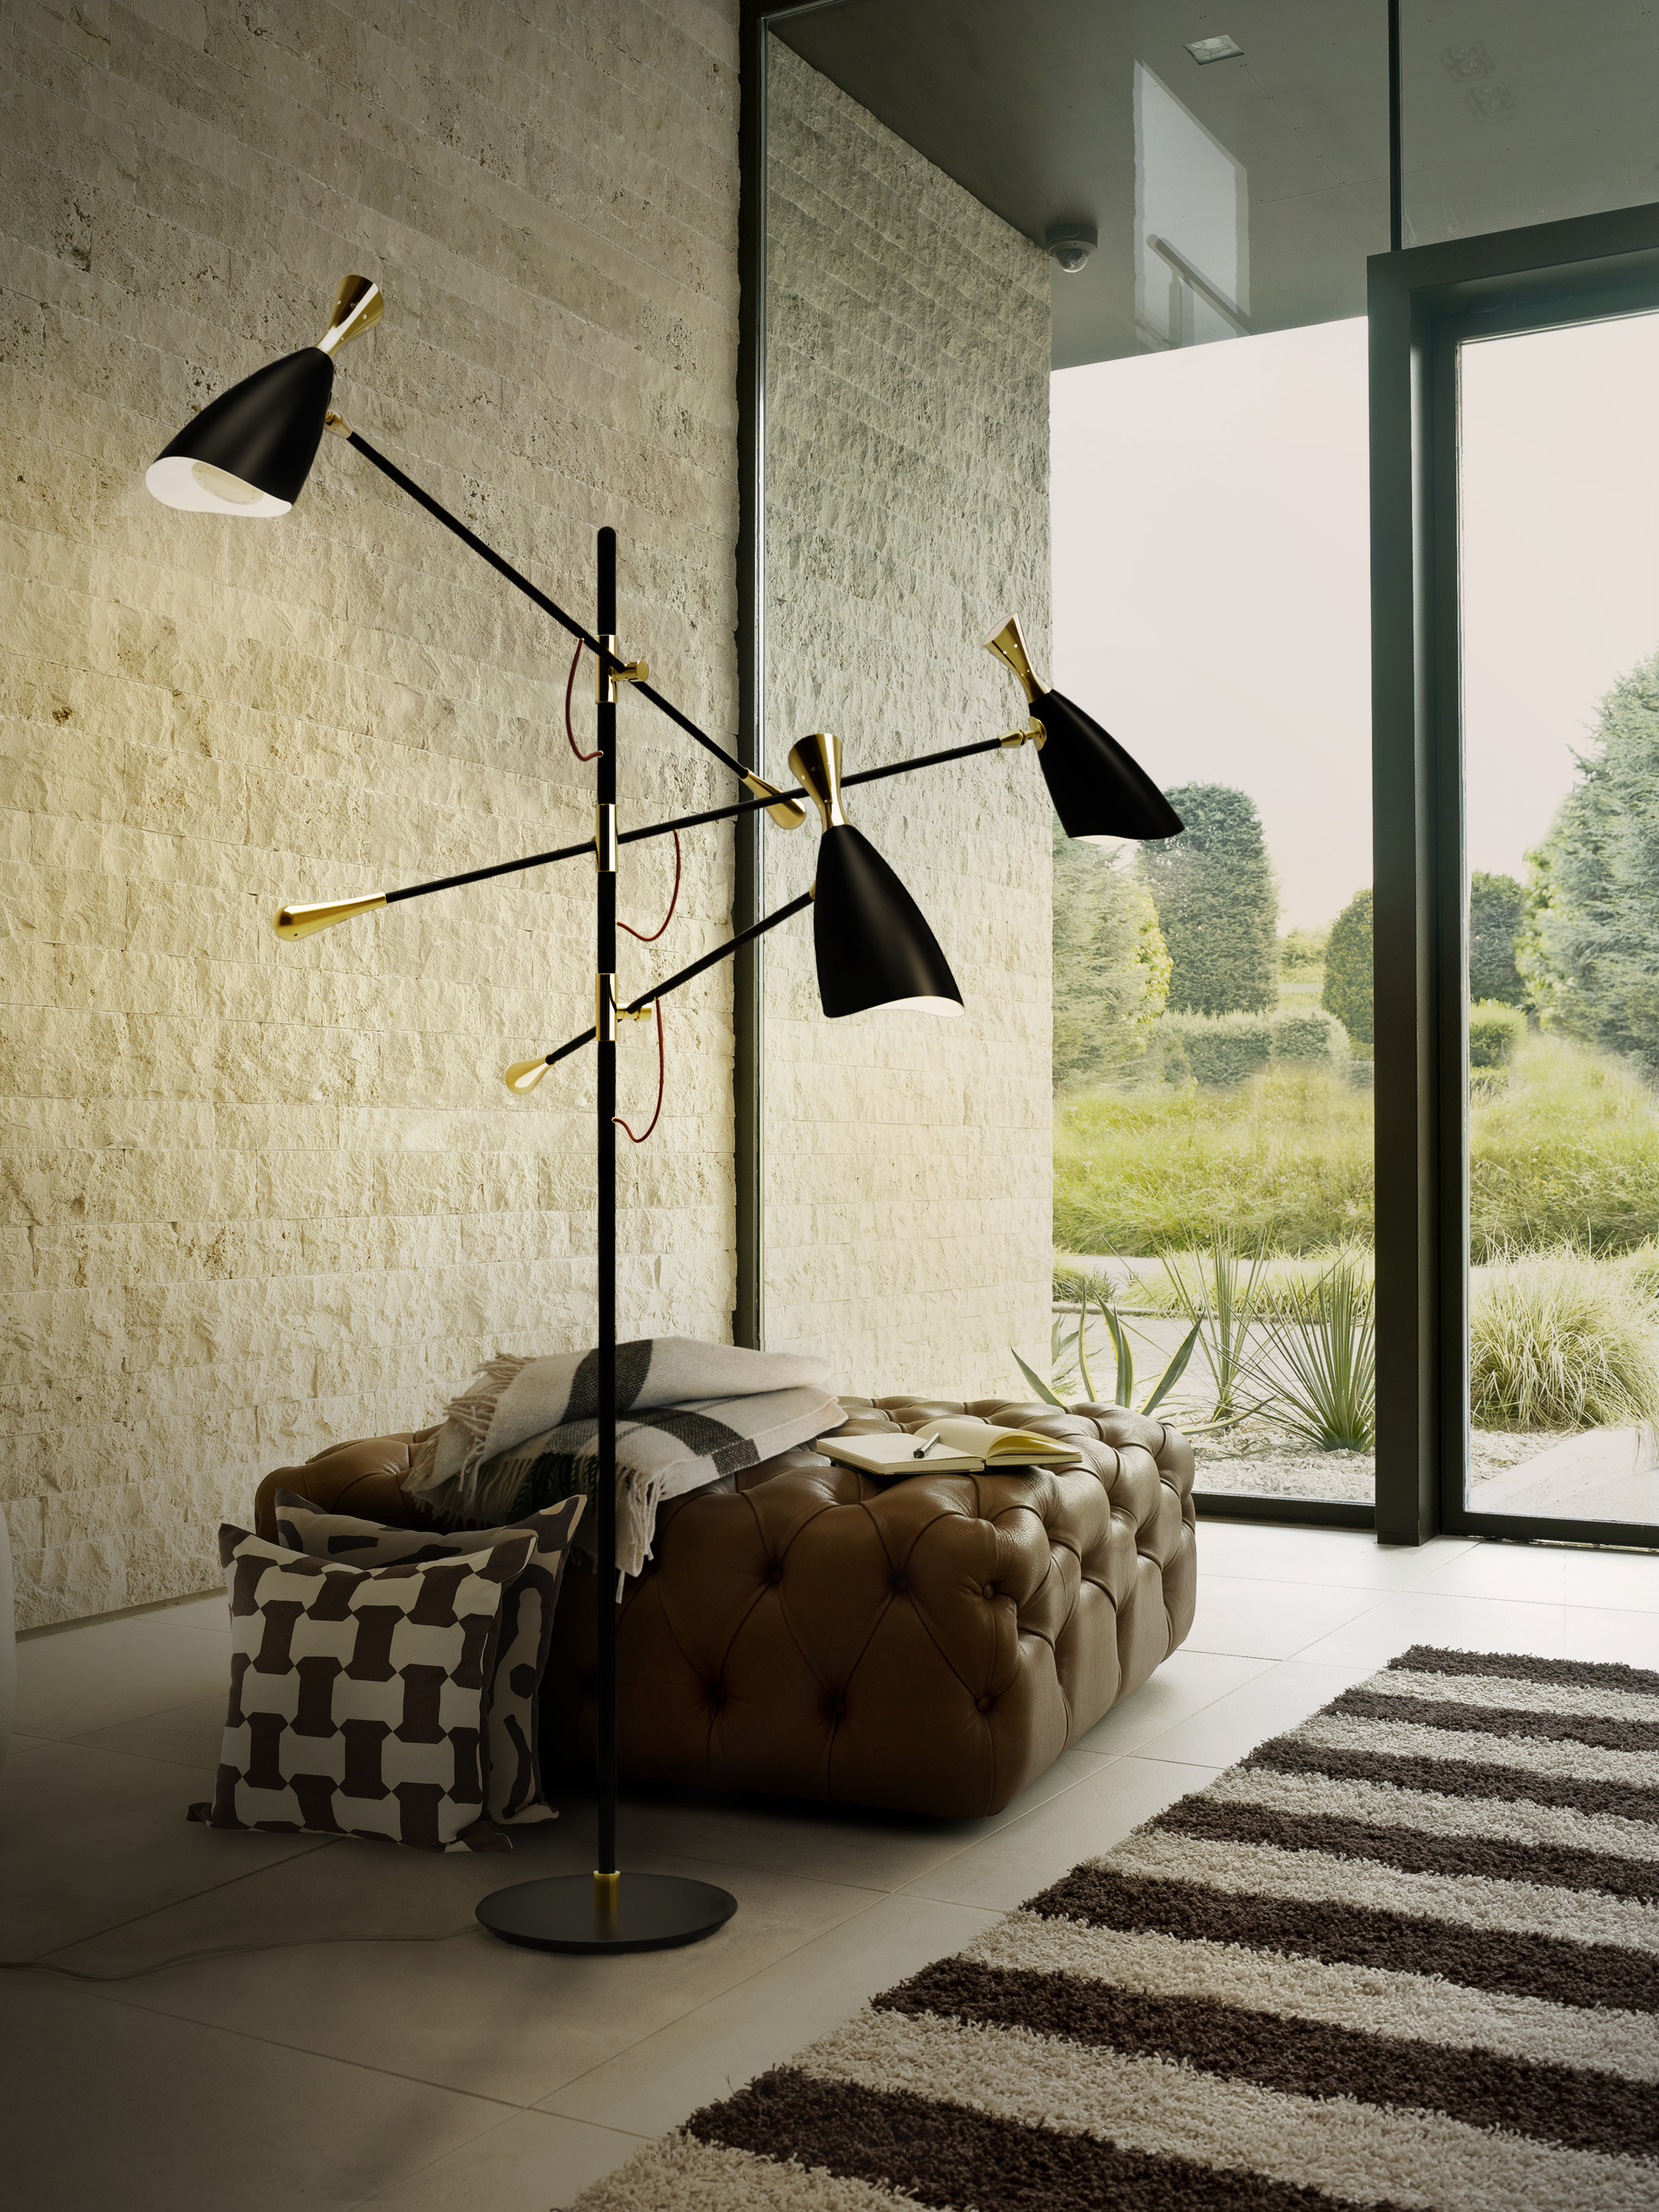 contract floor lamps contract floor lamps Contract Floor Lamps At Equip Hotel 2018 You Must See Now Contract Floor Lamps At Equip Hotel 2018 4